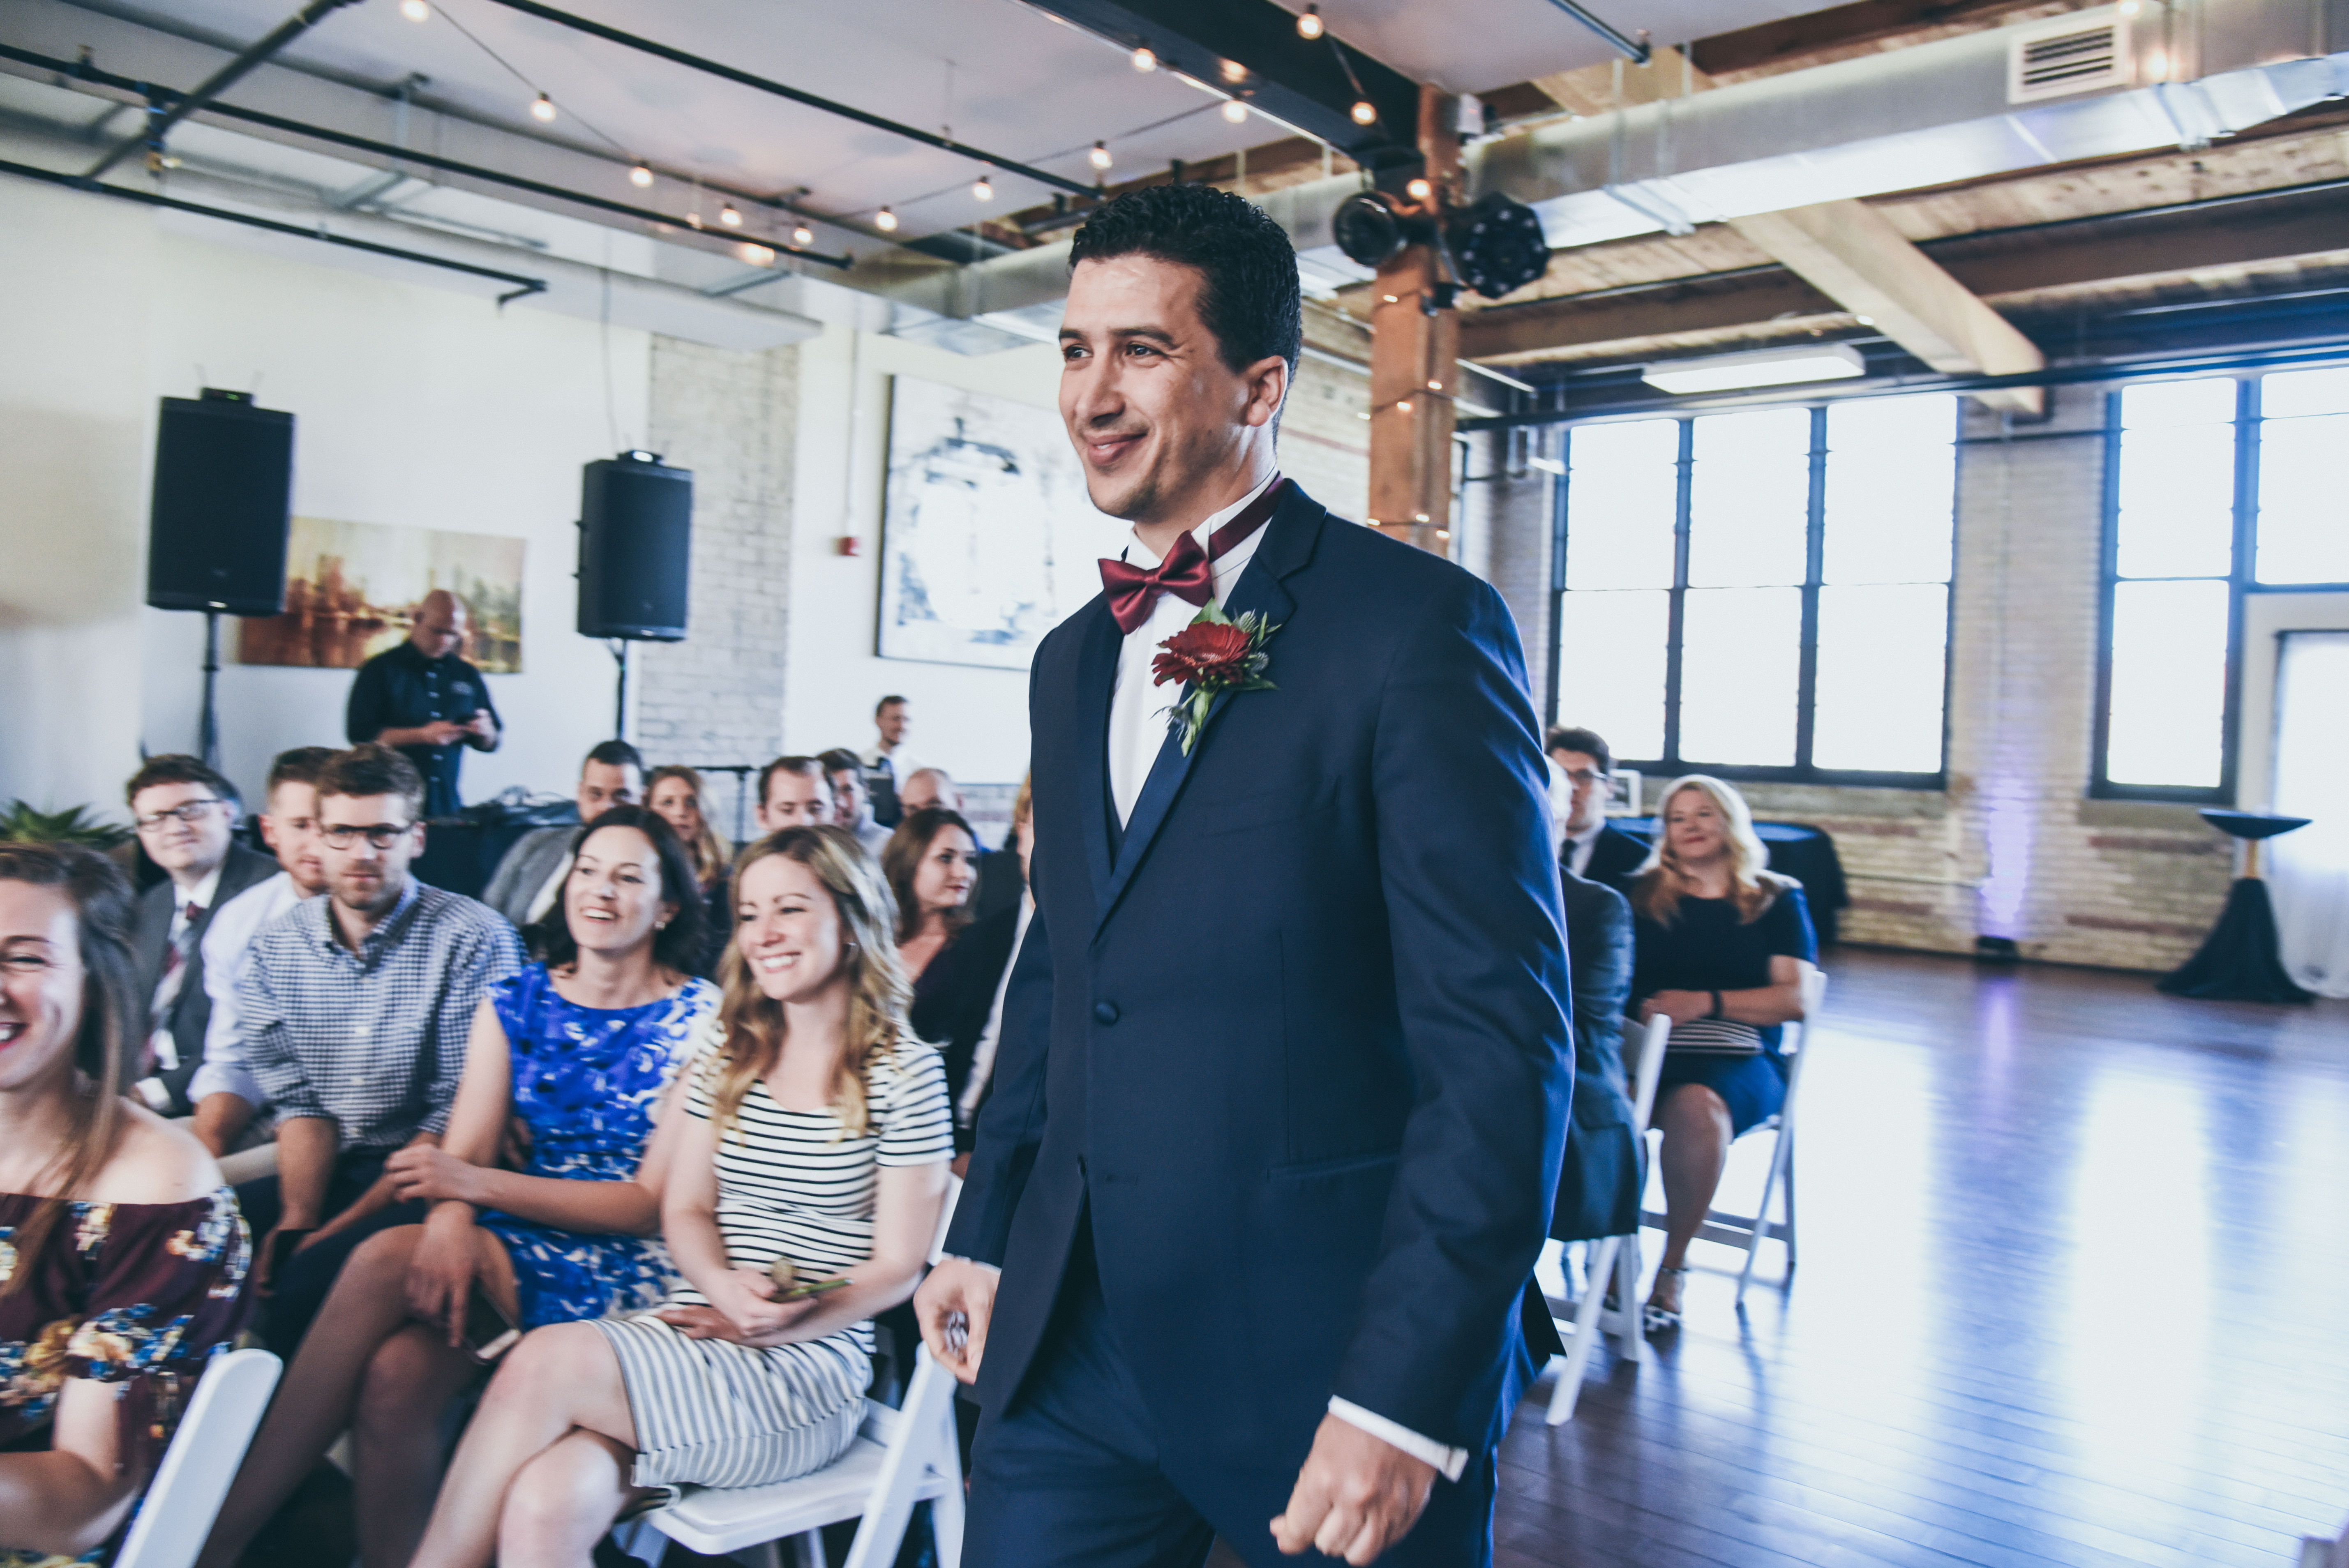 A groom walking down the aisle at his wedding